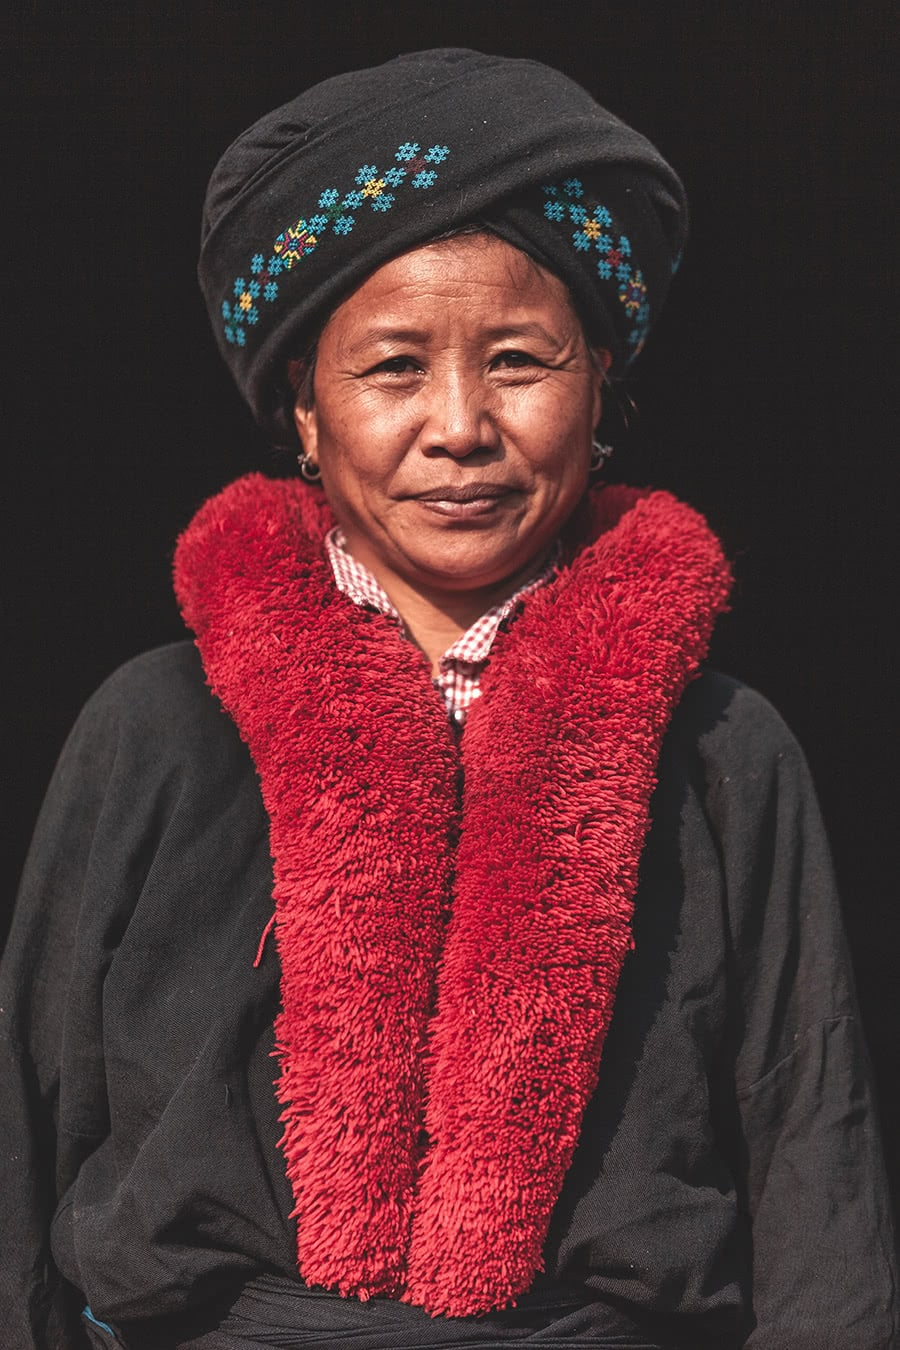 A colorful Yao woman in Muang Sing, Laos